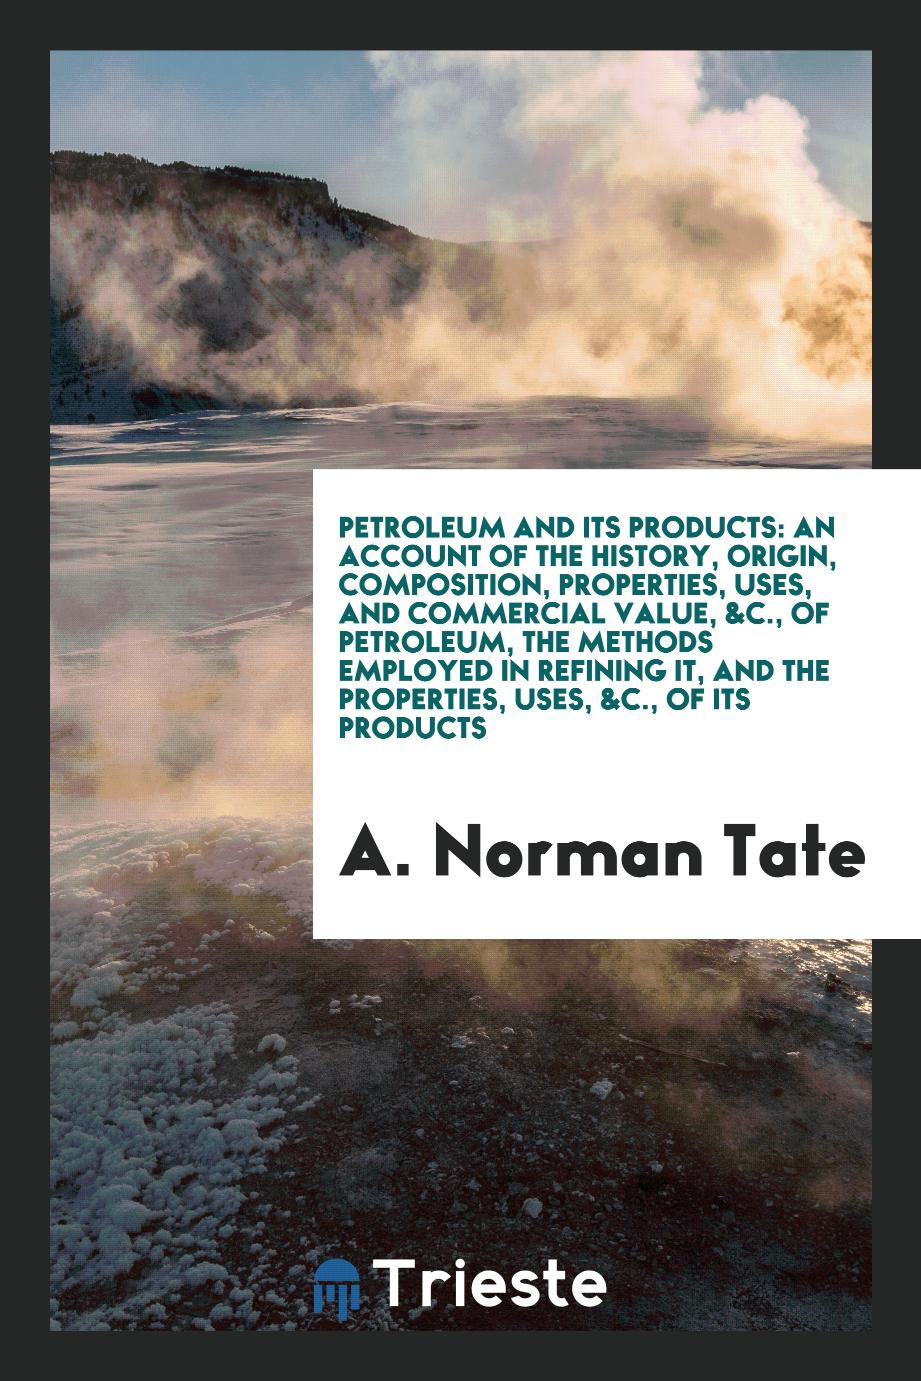 Petroleum and Its Products: An Account of the History, Origin, Composition, Properties, Uses, and Commercial Value, &c., of Petroleum, the Methods Employed in Refining It, and the Properties, Uses, &C., of Its Products